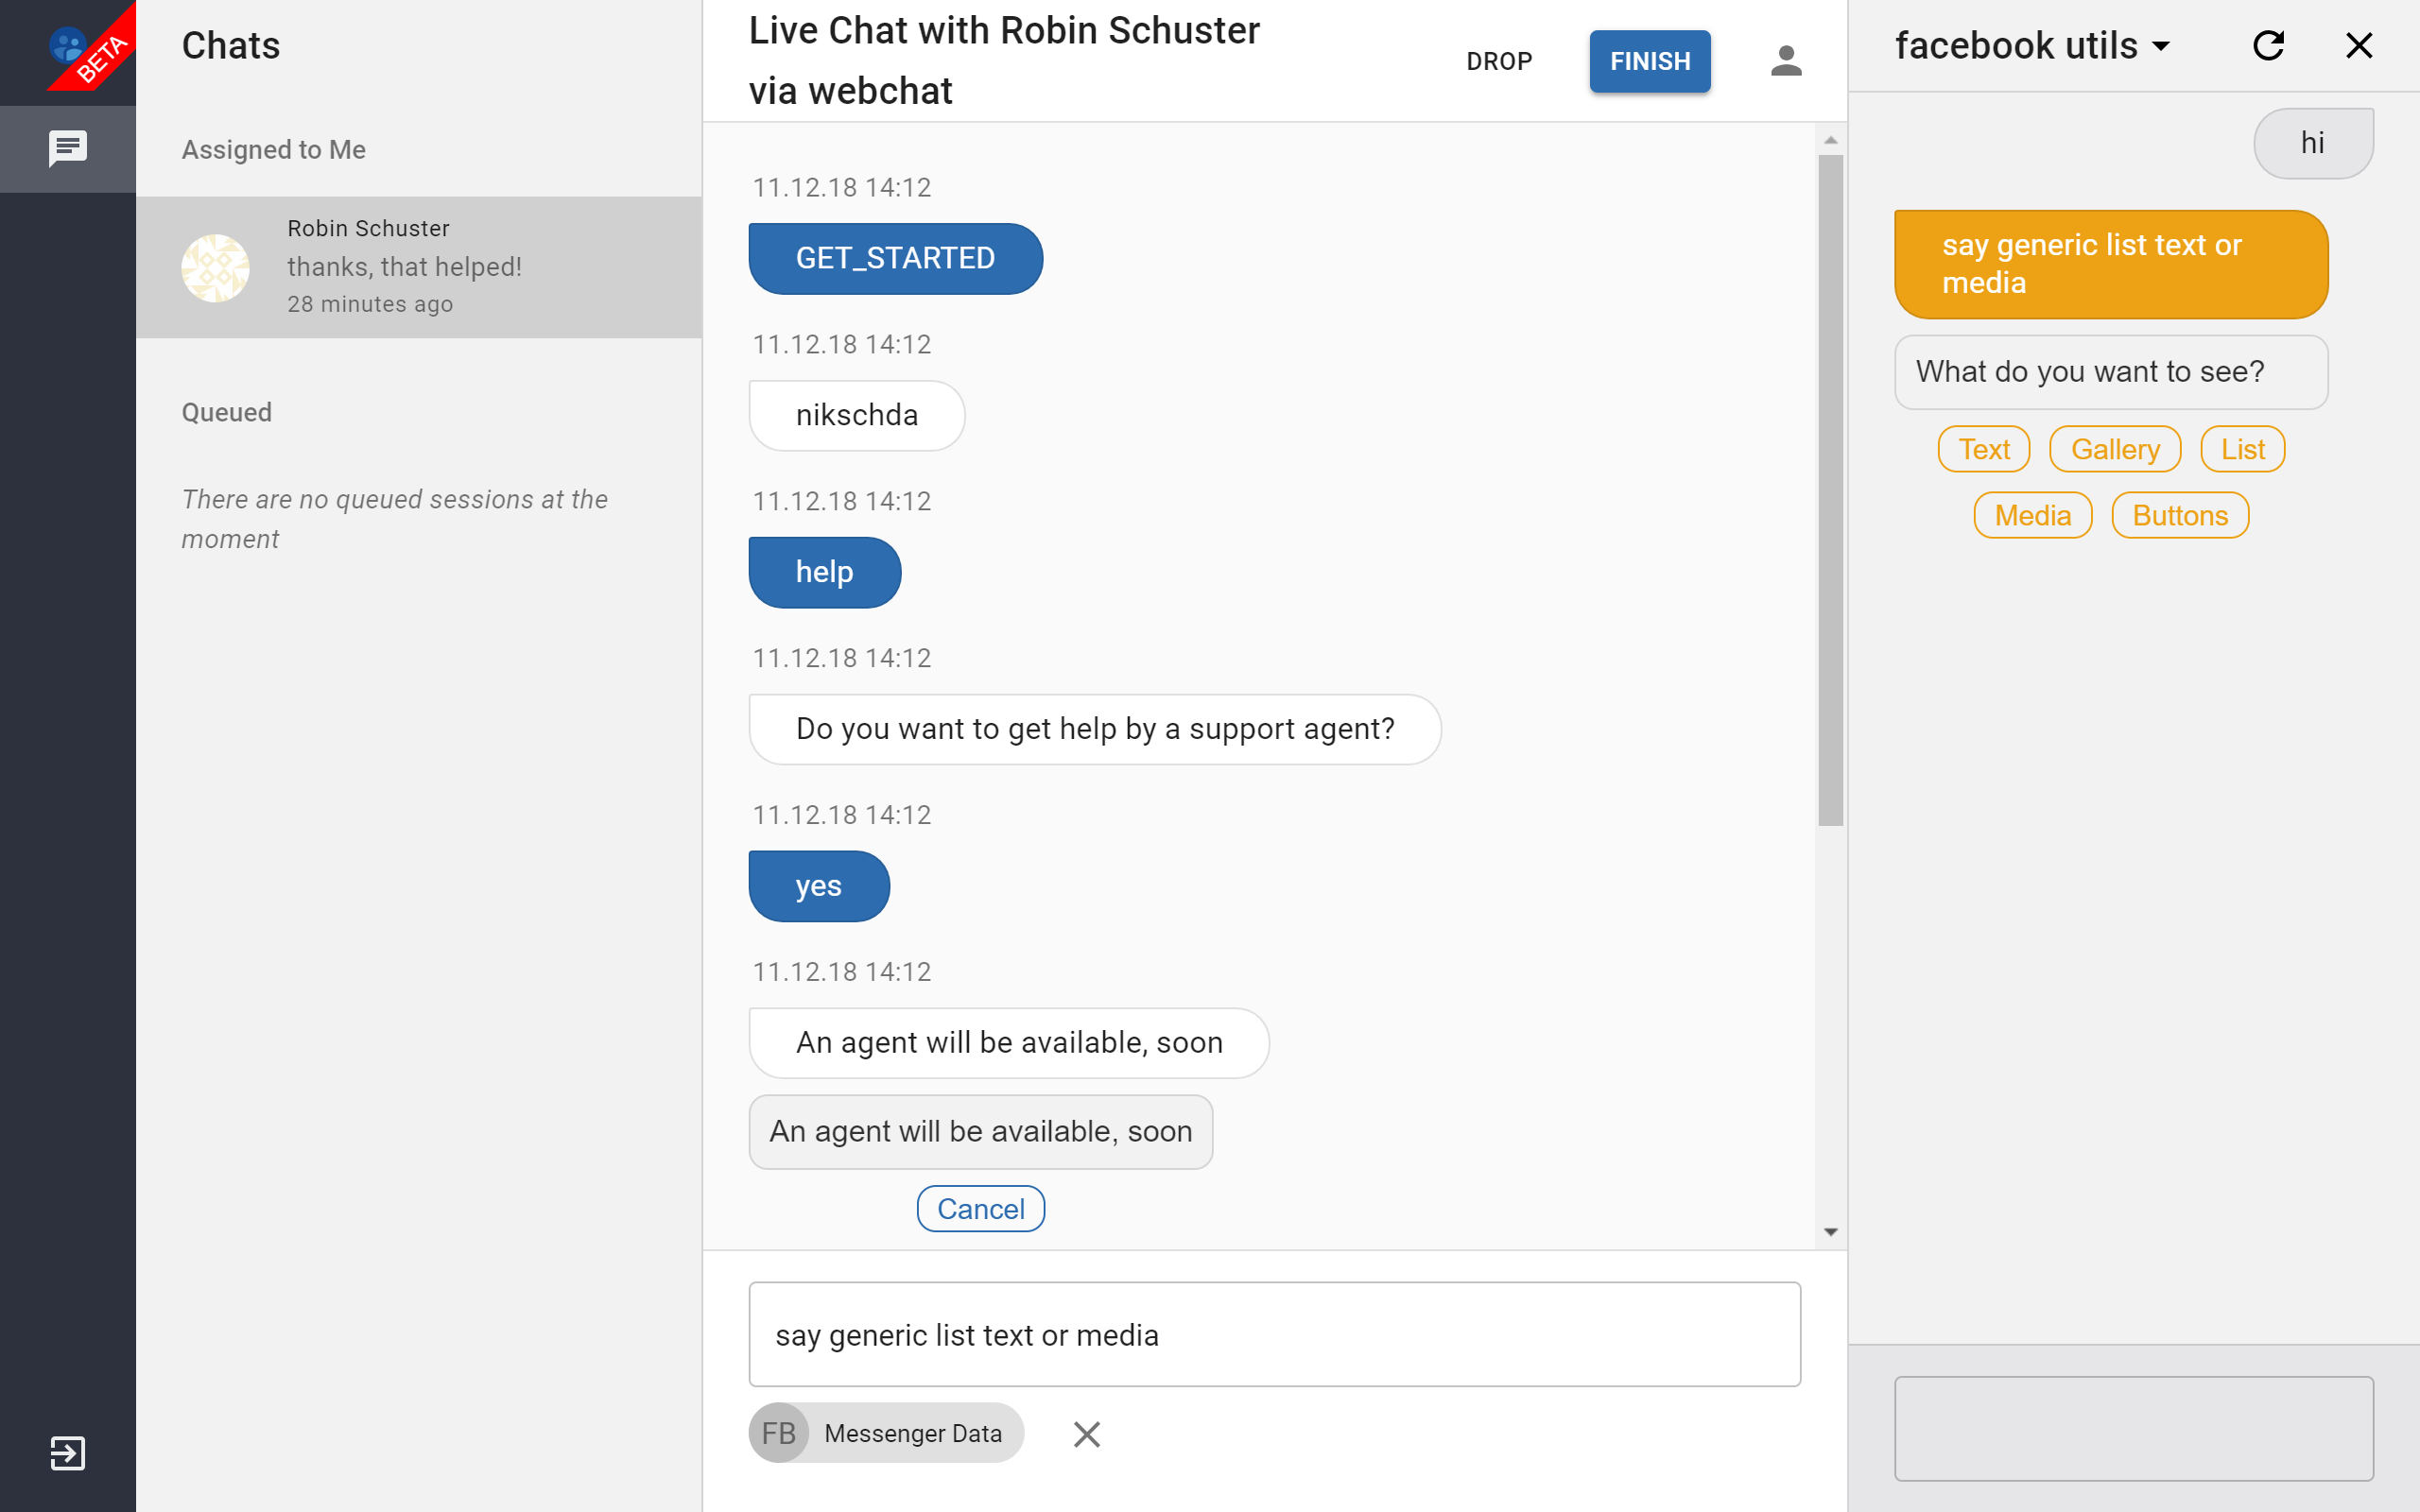 Using the Live Chat UI